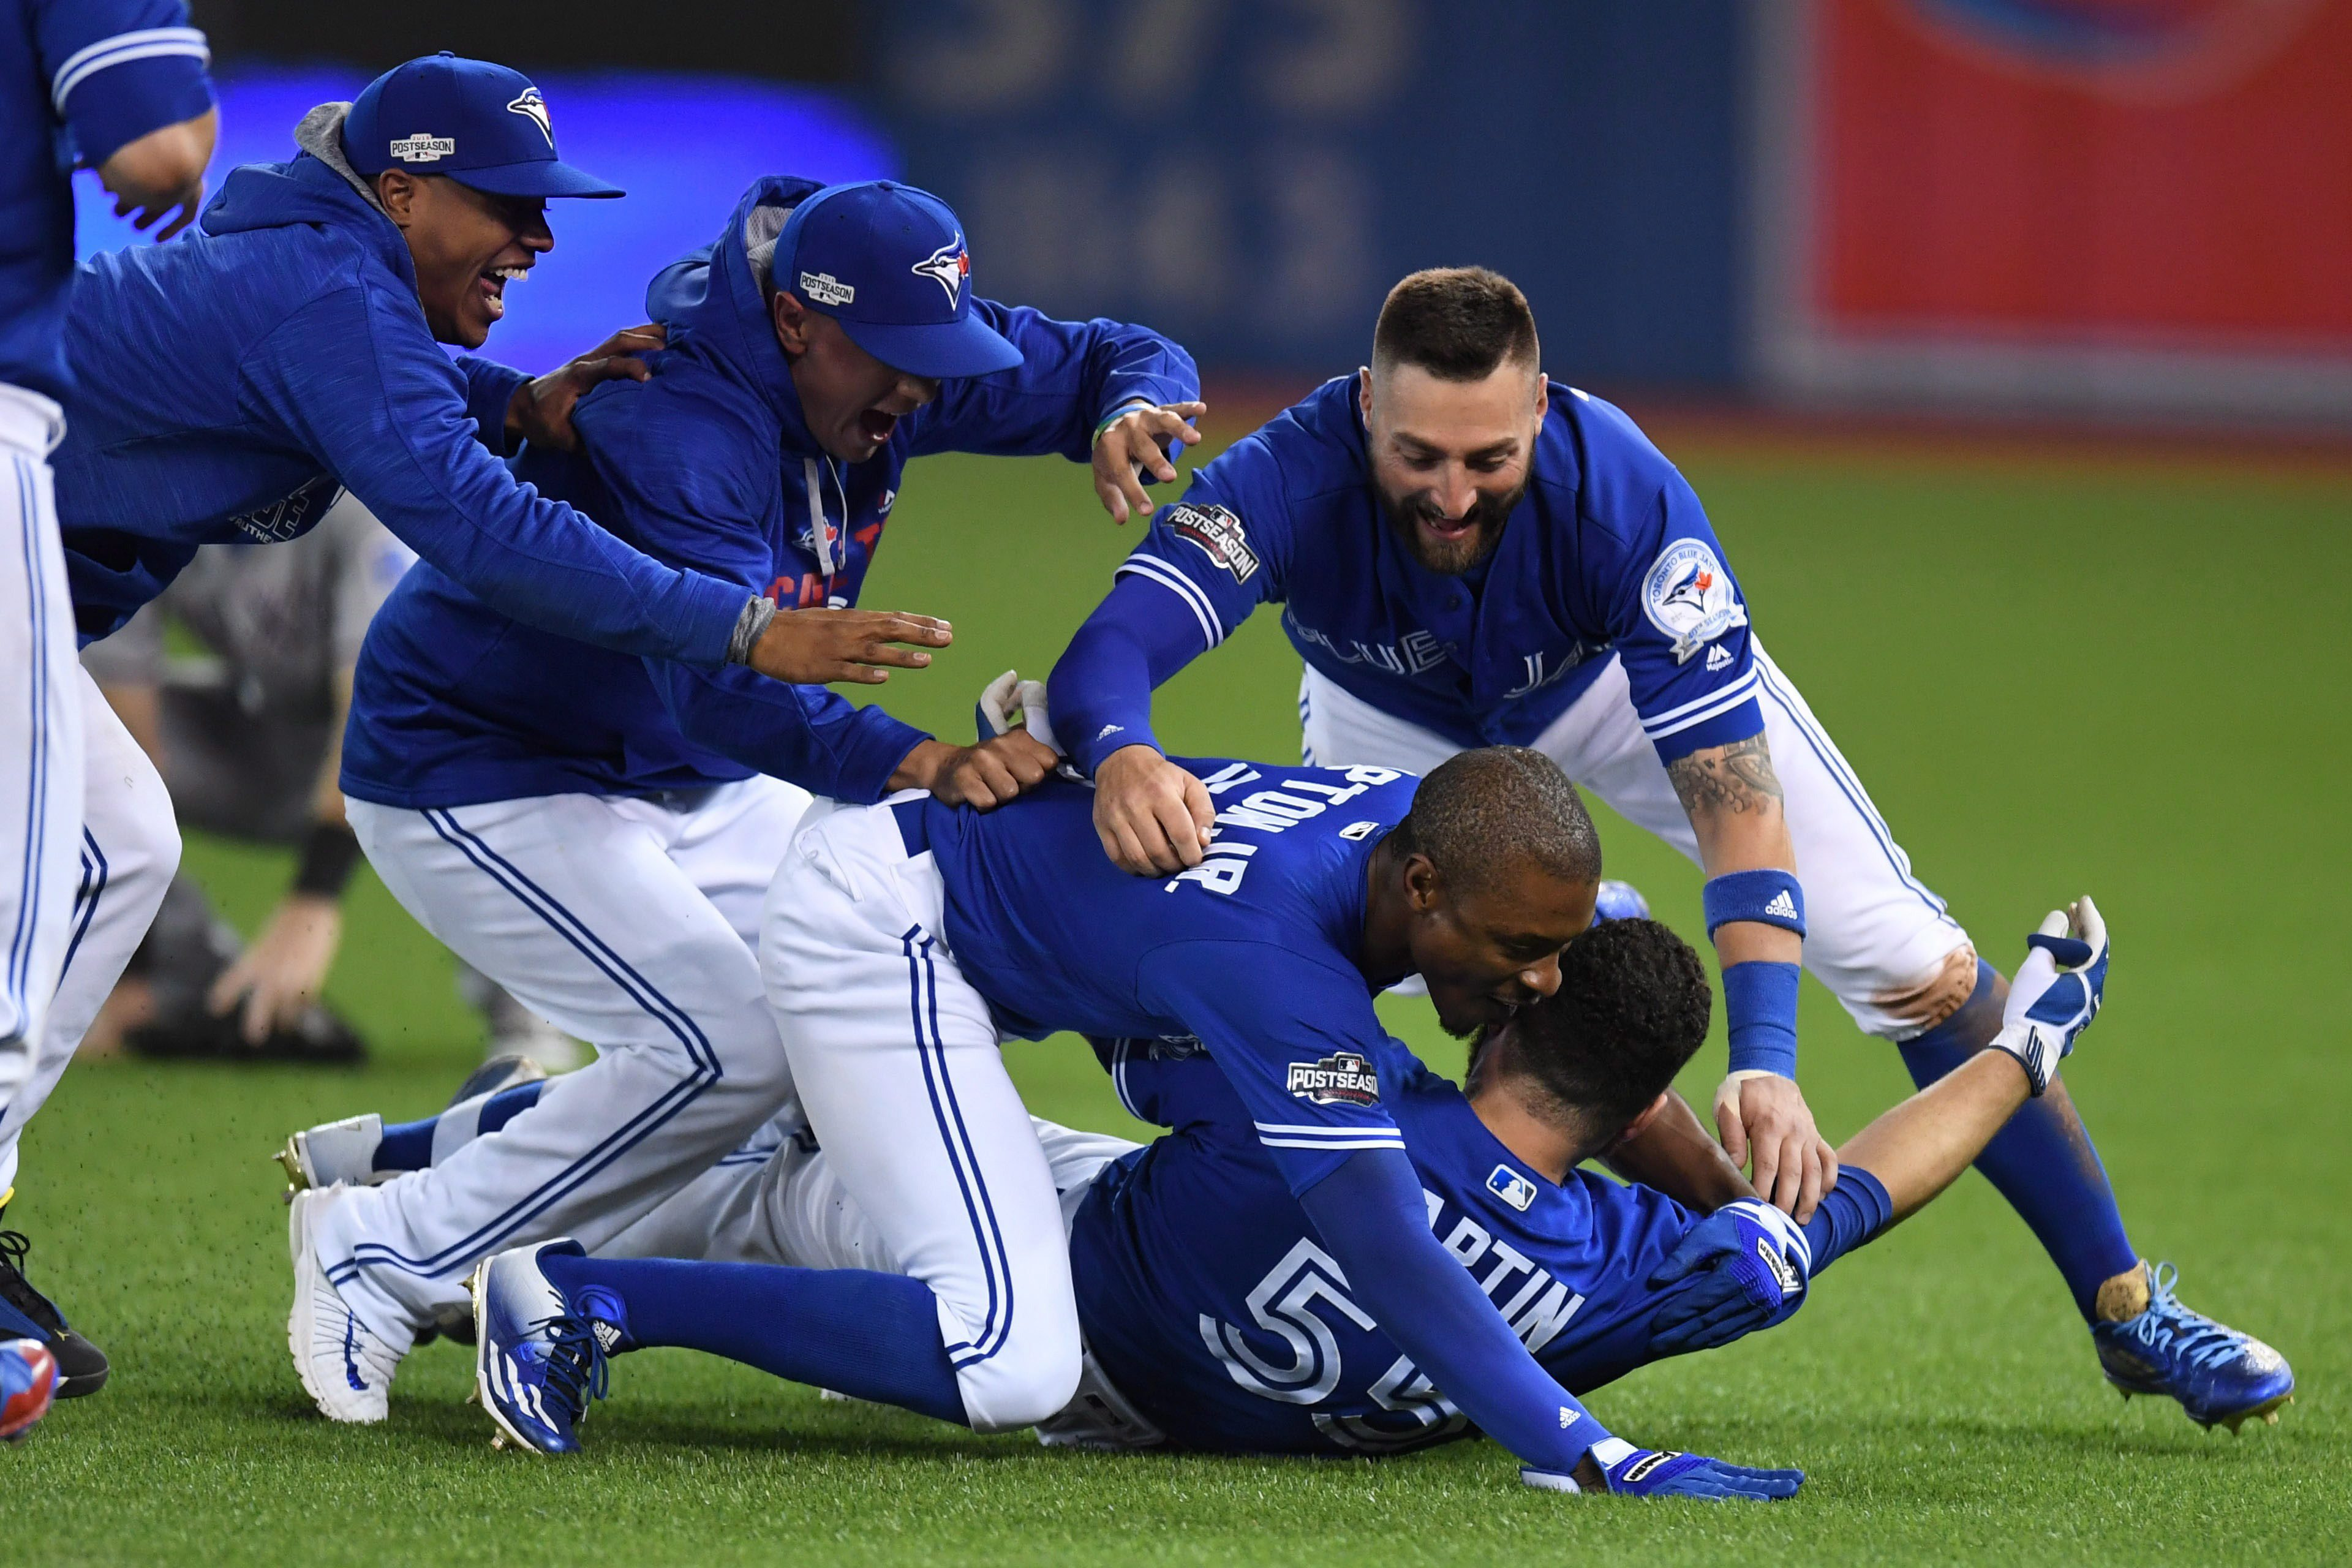 Toronto Blue Jays sweep American League Division Series